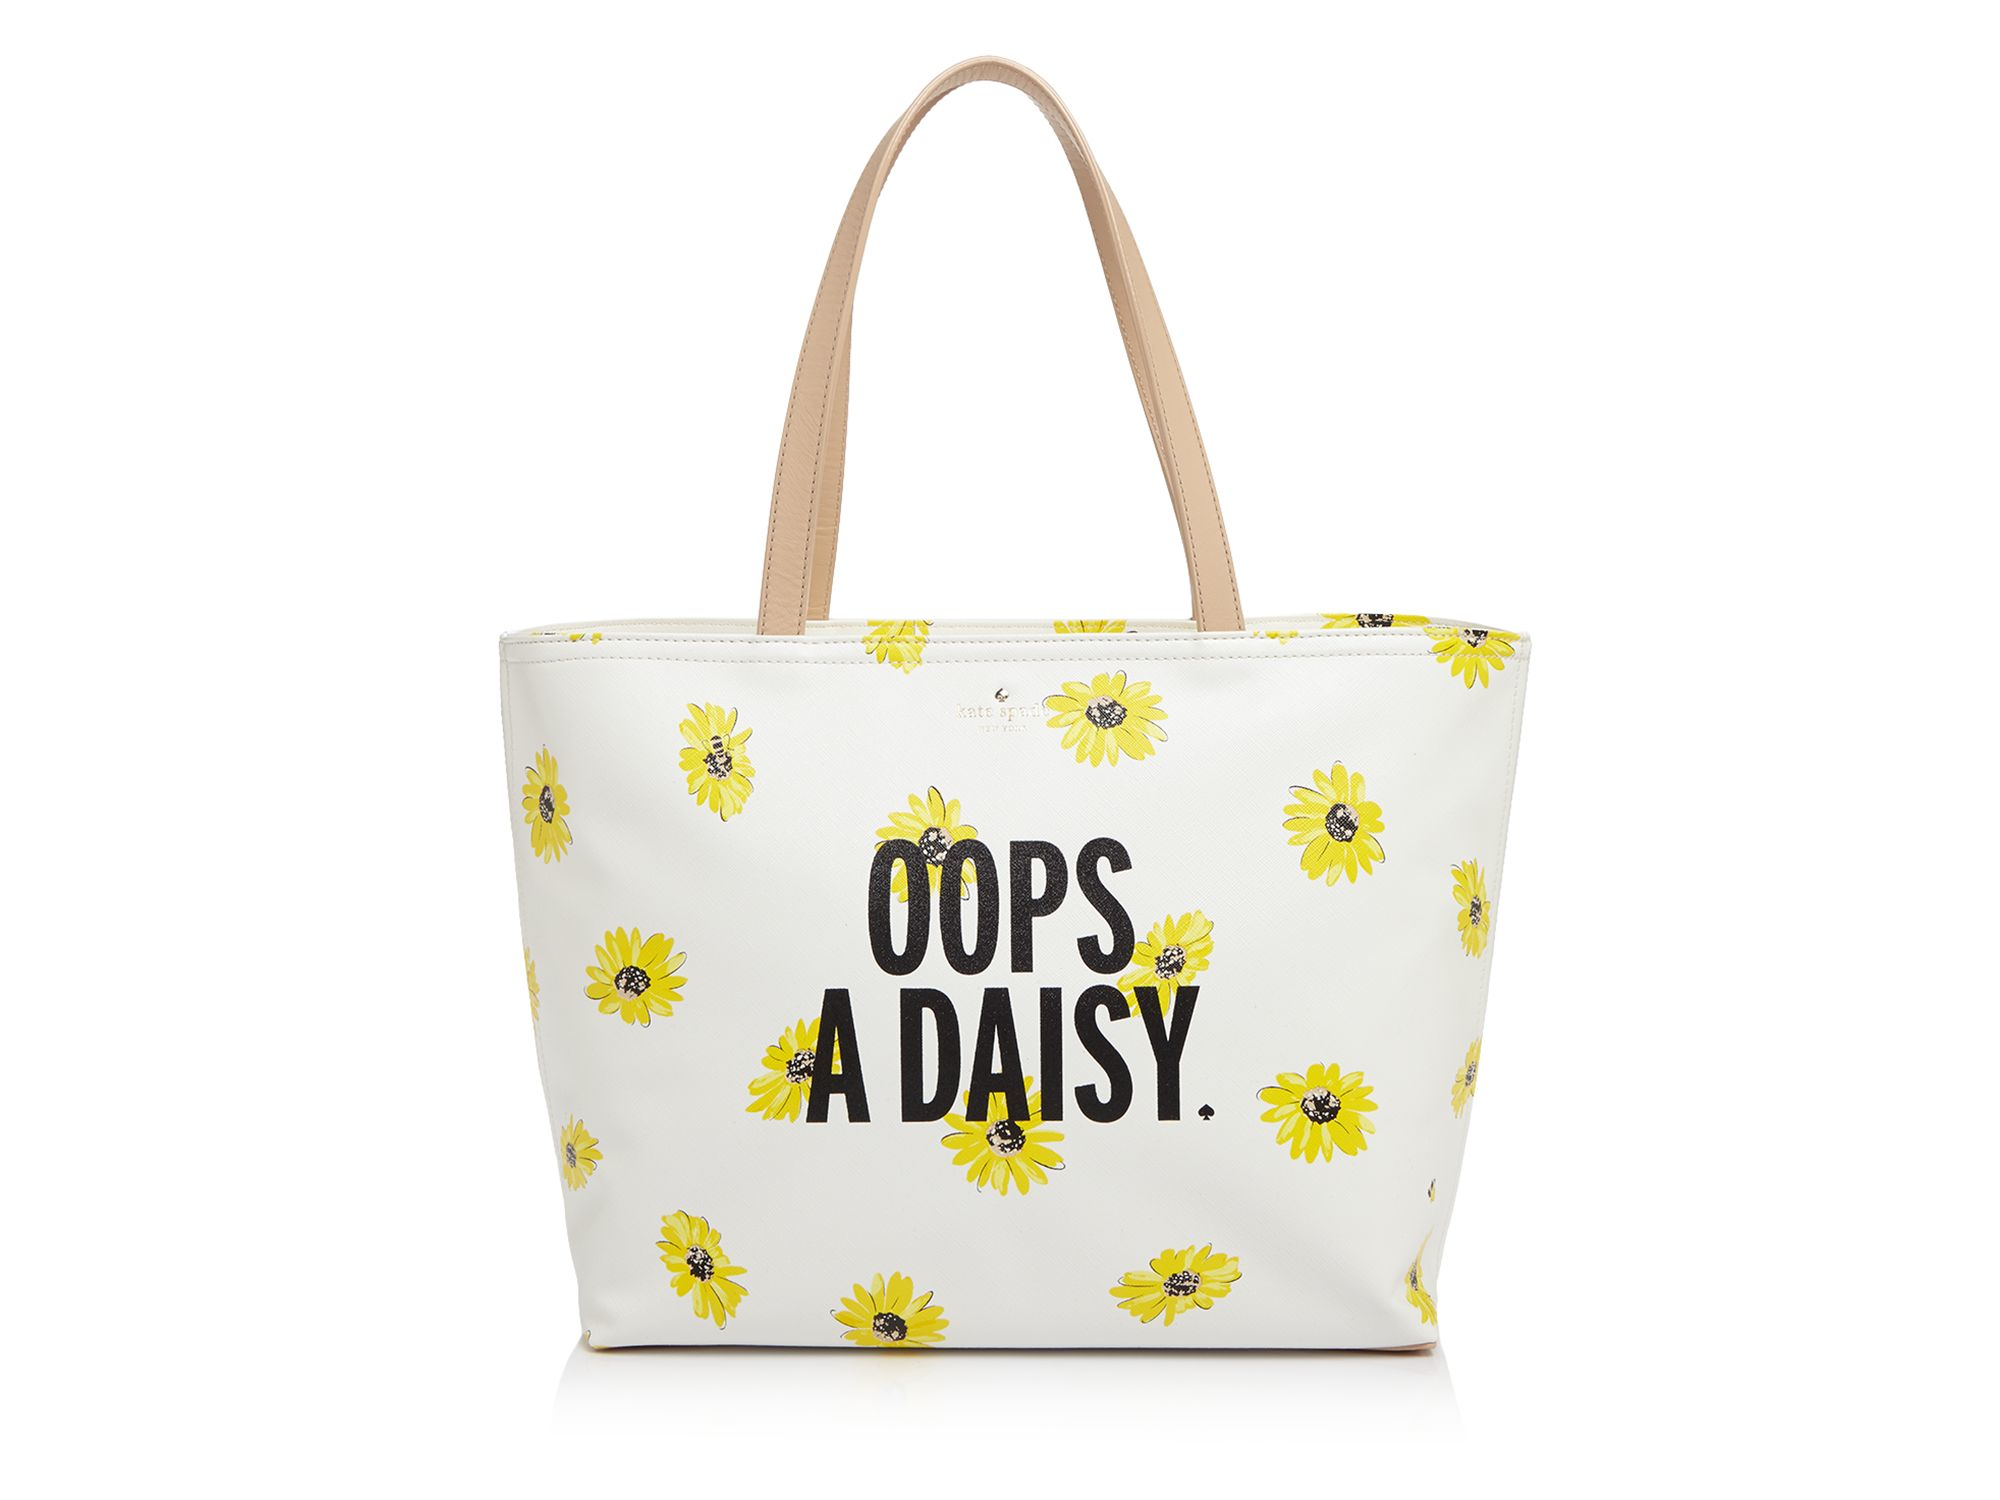 Kate spade new york Oops A Daisy Francis Tote | Lyst